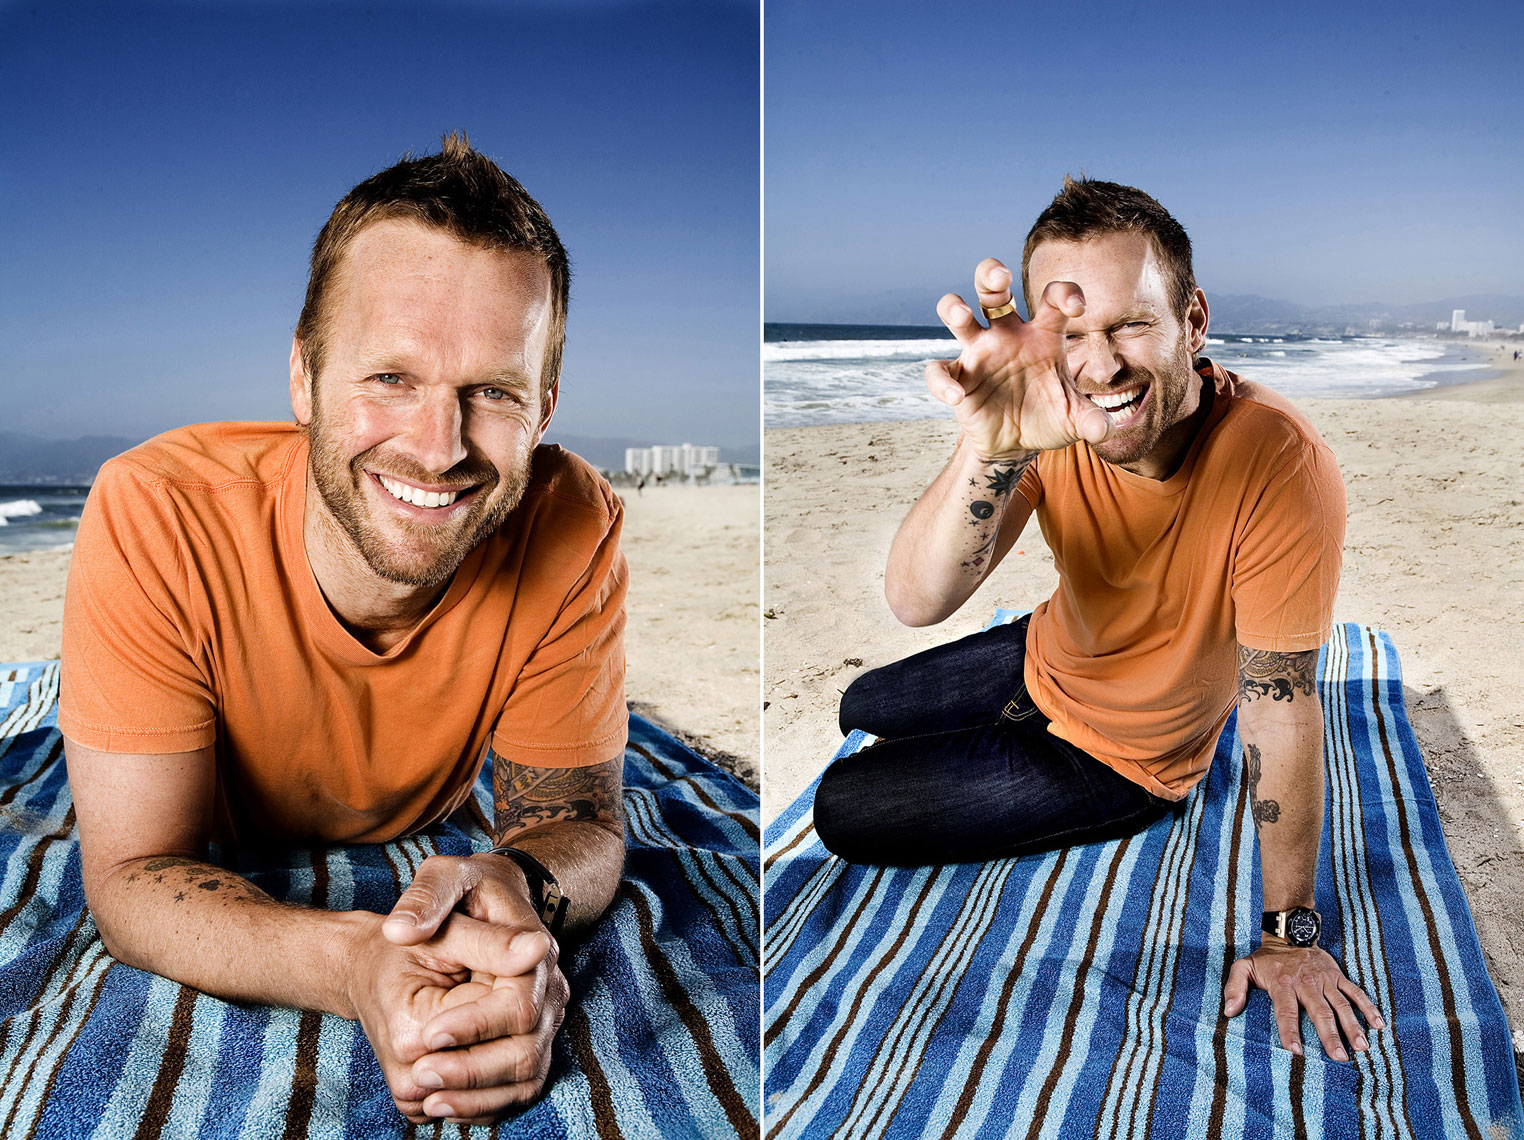 MANUELLO PAGANELLI  Photographer  / PORTRAITS, EDITORIAL, CELEBRITIES / SPORTS , TRAVEL, ADVENTURE / LIFESTYLE, FASHION /MAGAZINE, WORKSHOPS - HOLLYWOOD, SAN FRANCISCO, LOS ANGELES California - PORTRAIT - Bob Harper, The Biggest Loser